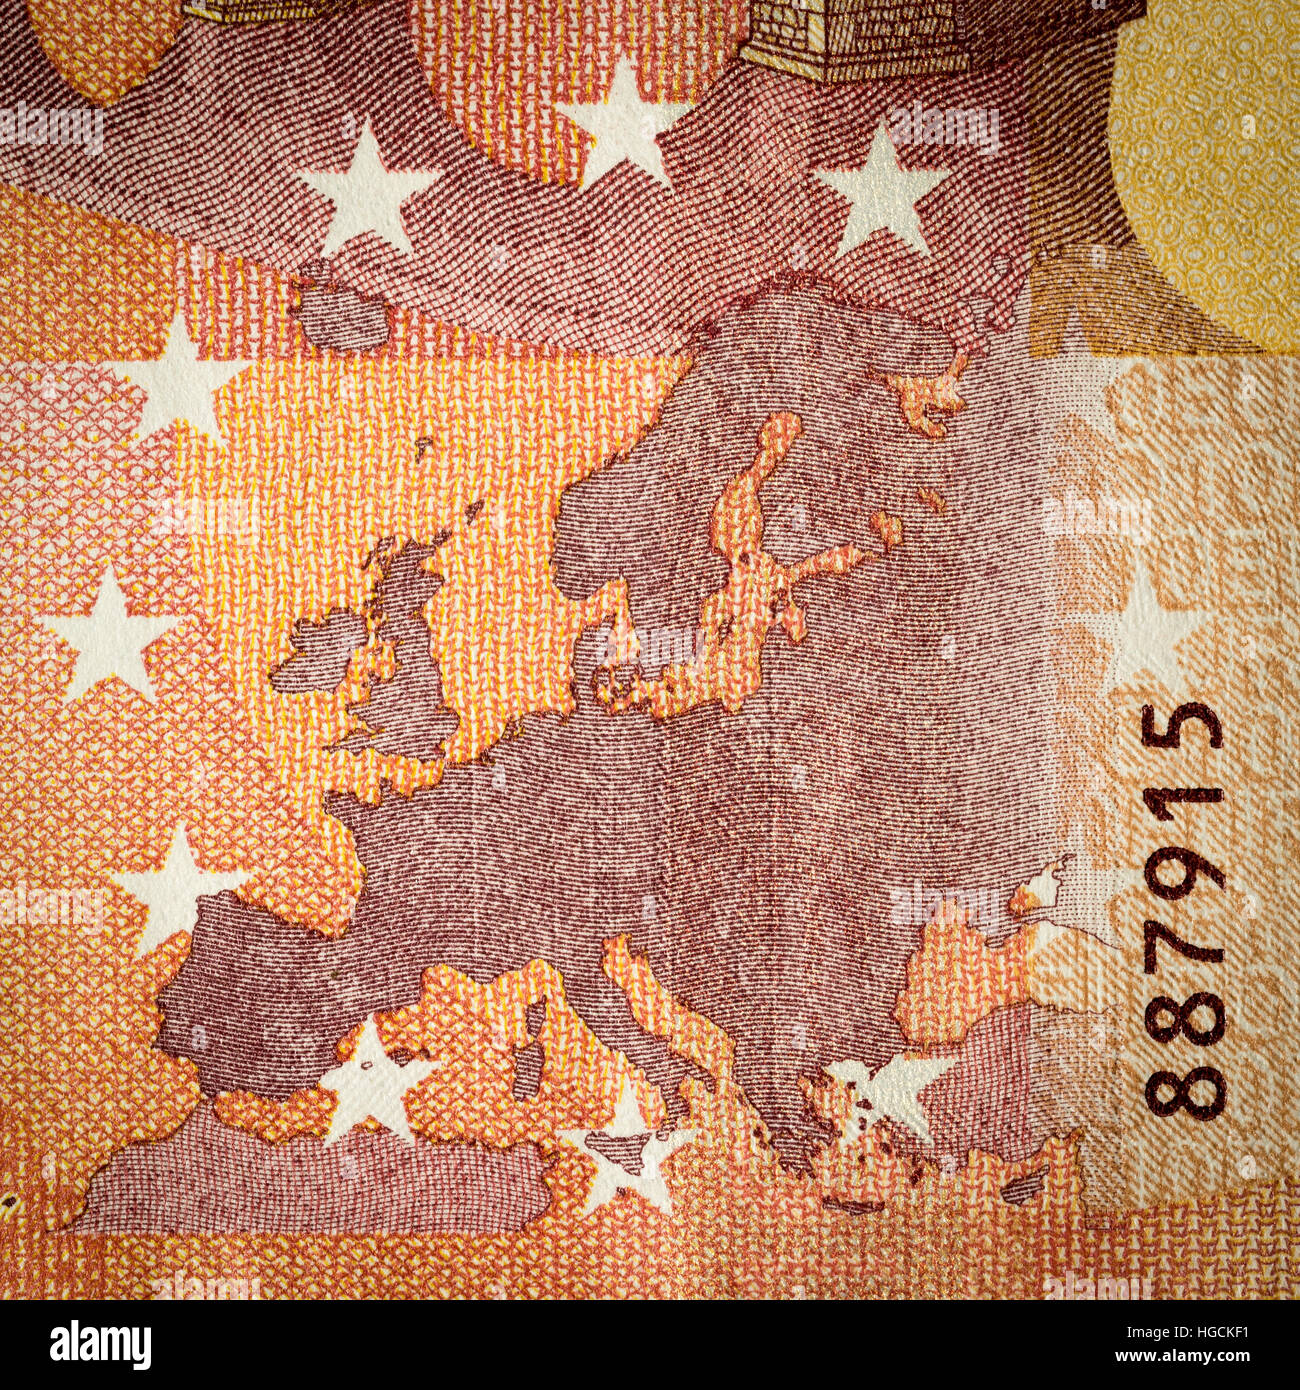 detail of a the € 10 banknote - Stock Image